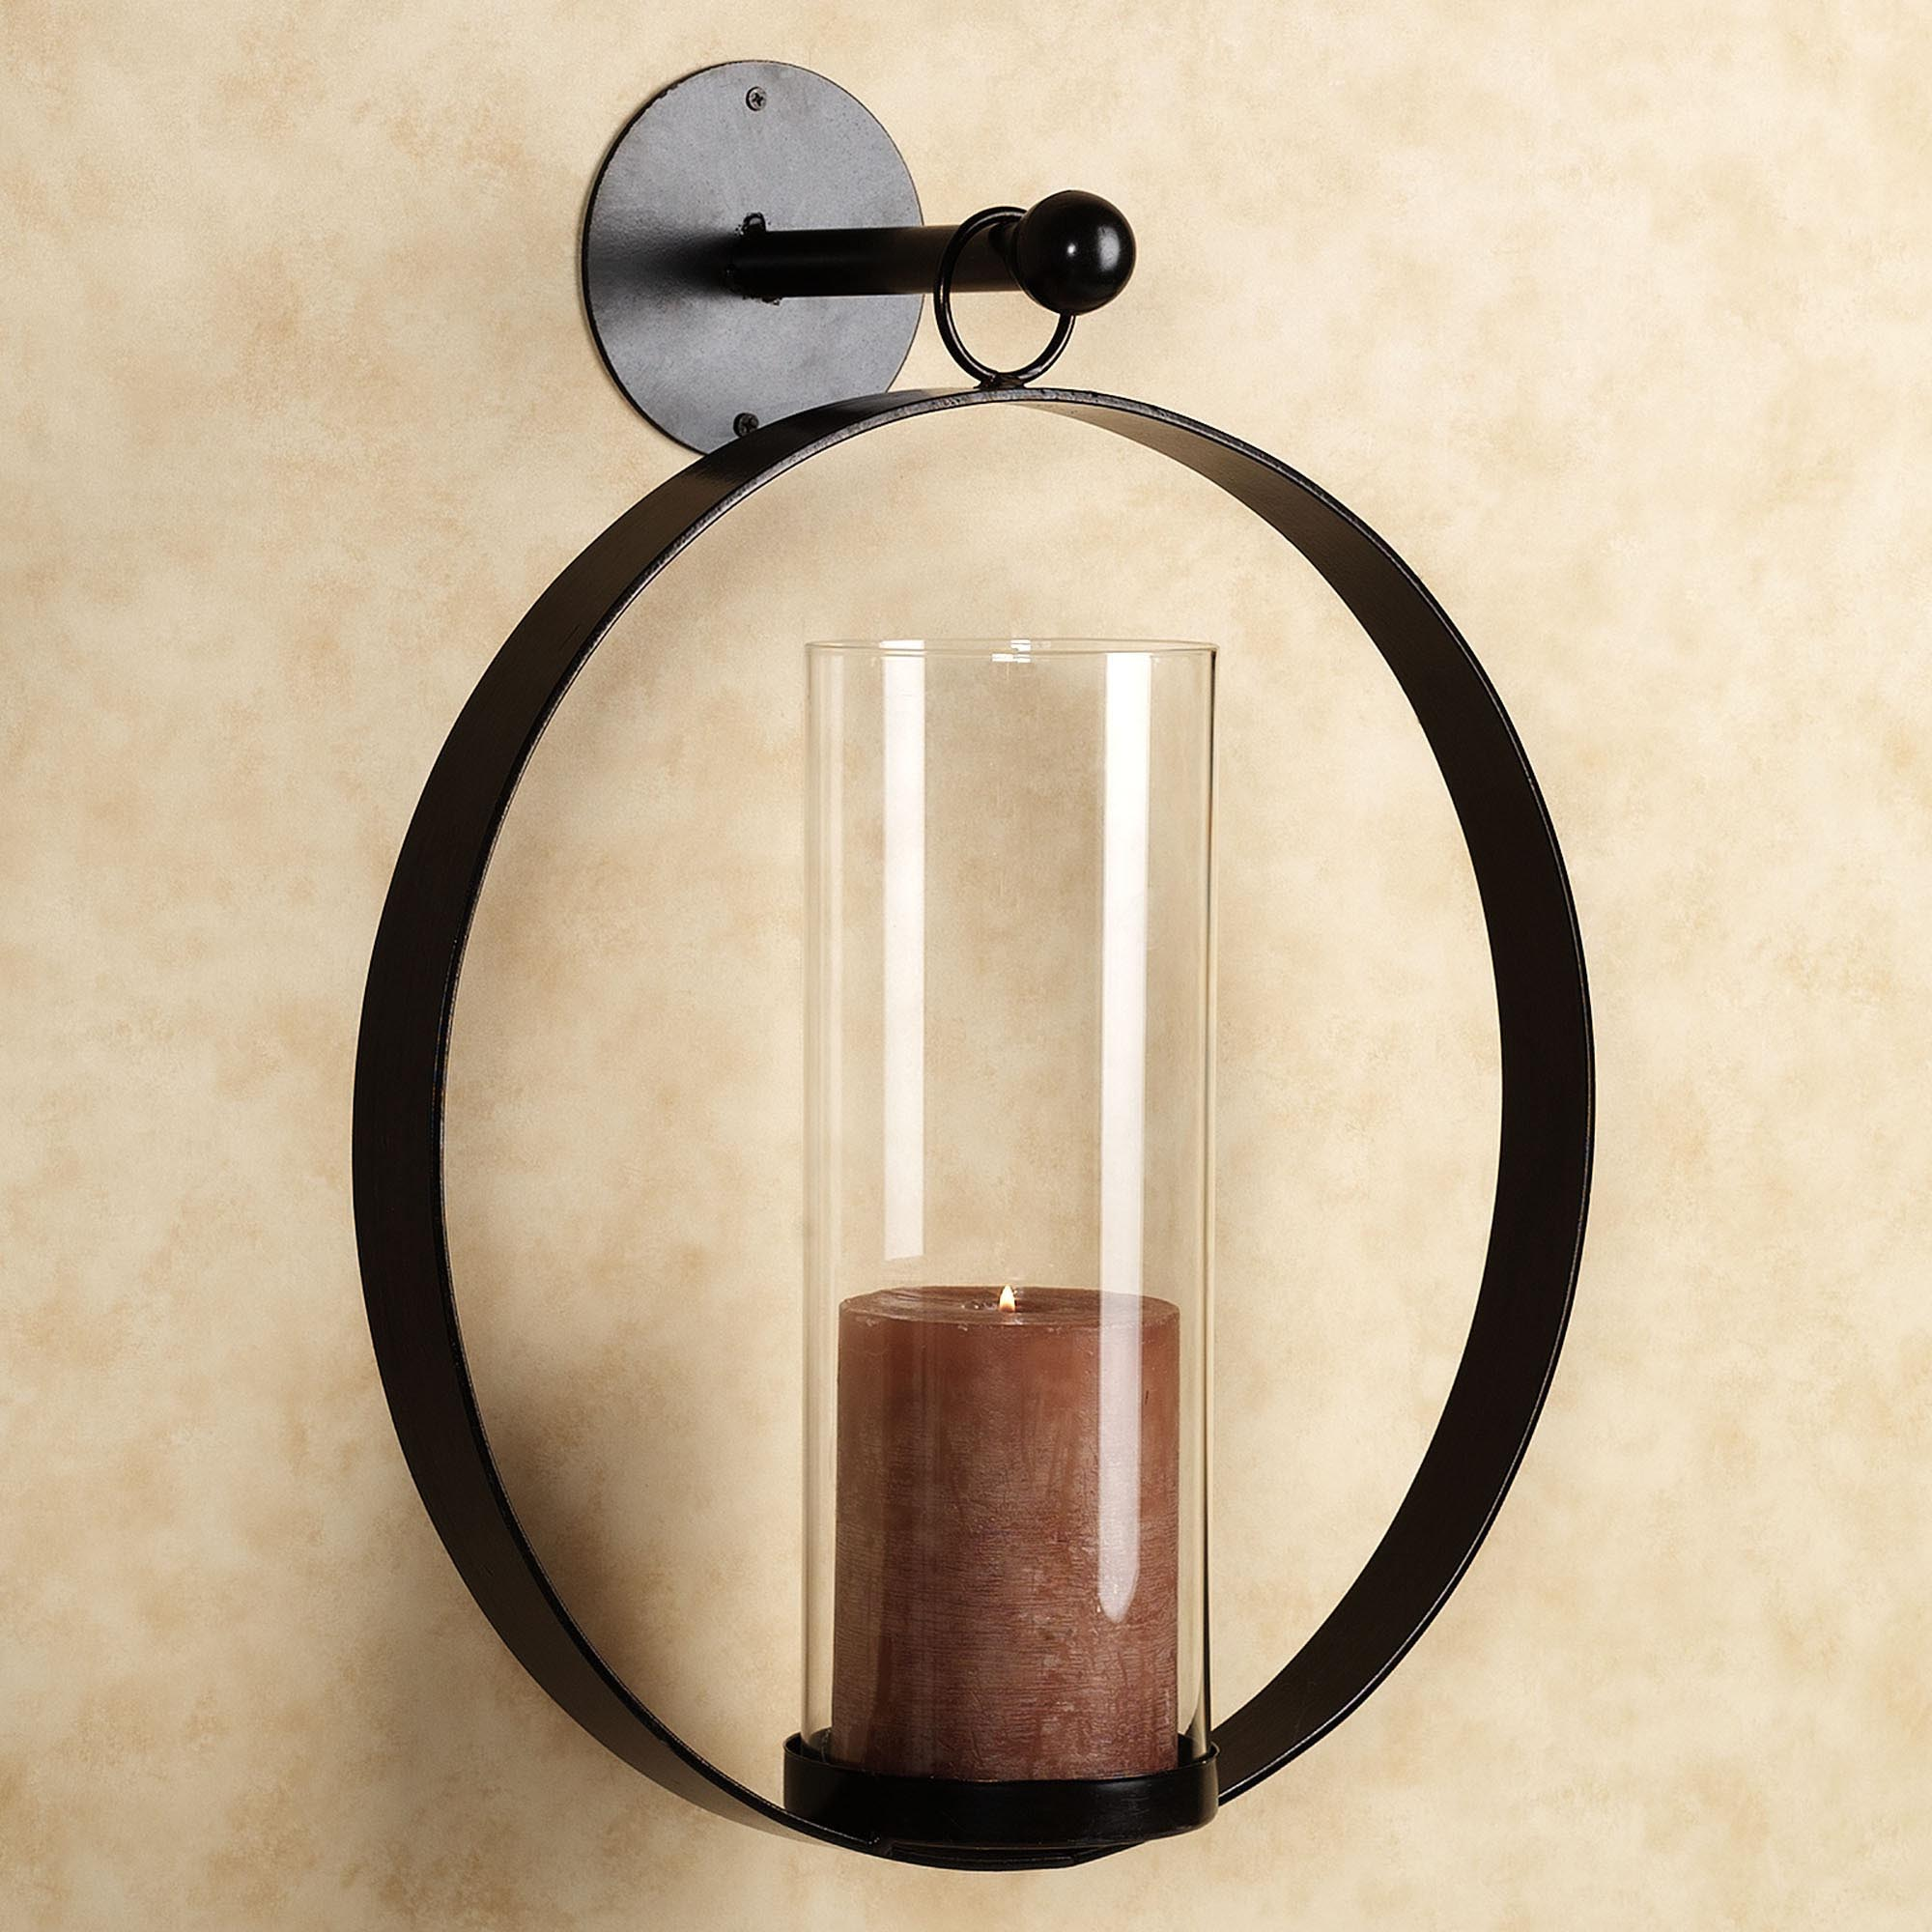 Hurricane Wall Sconce Candle Holder